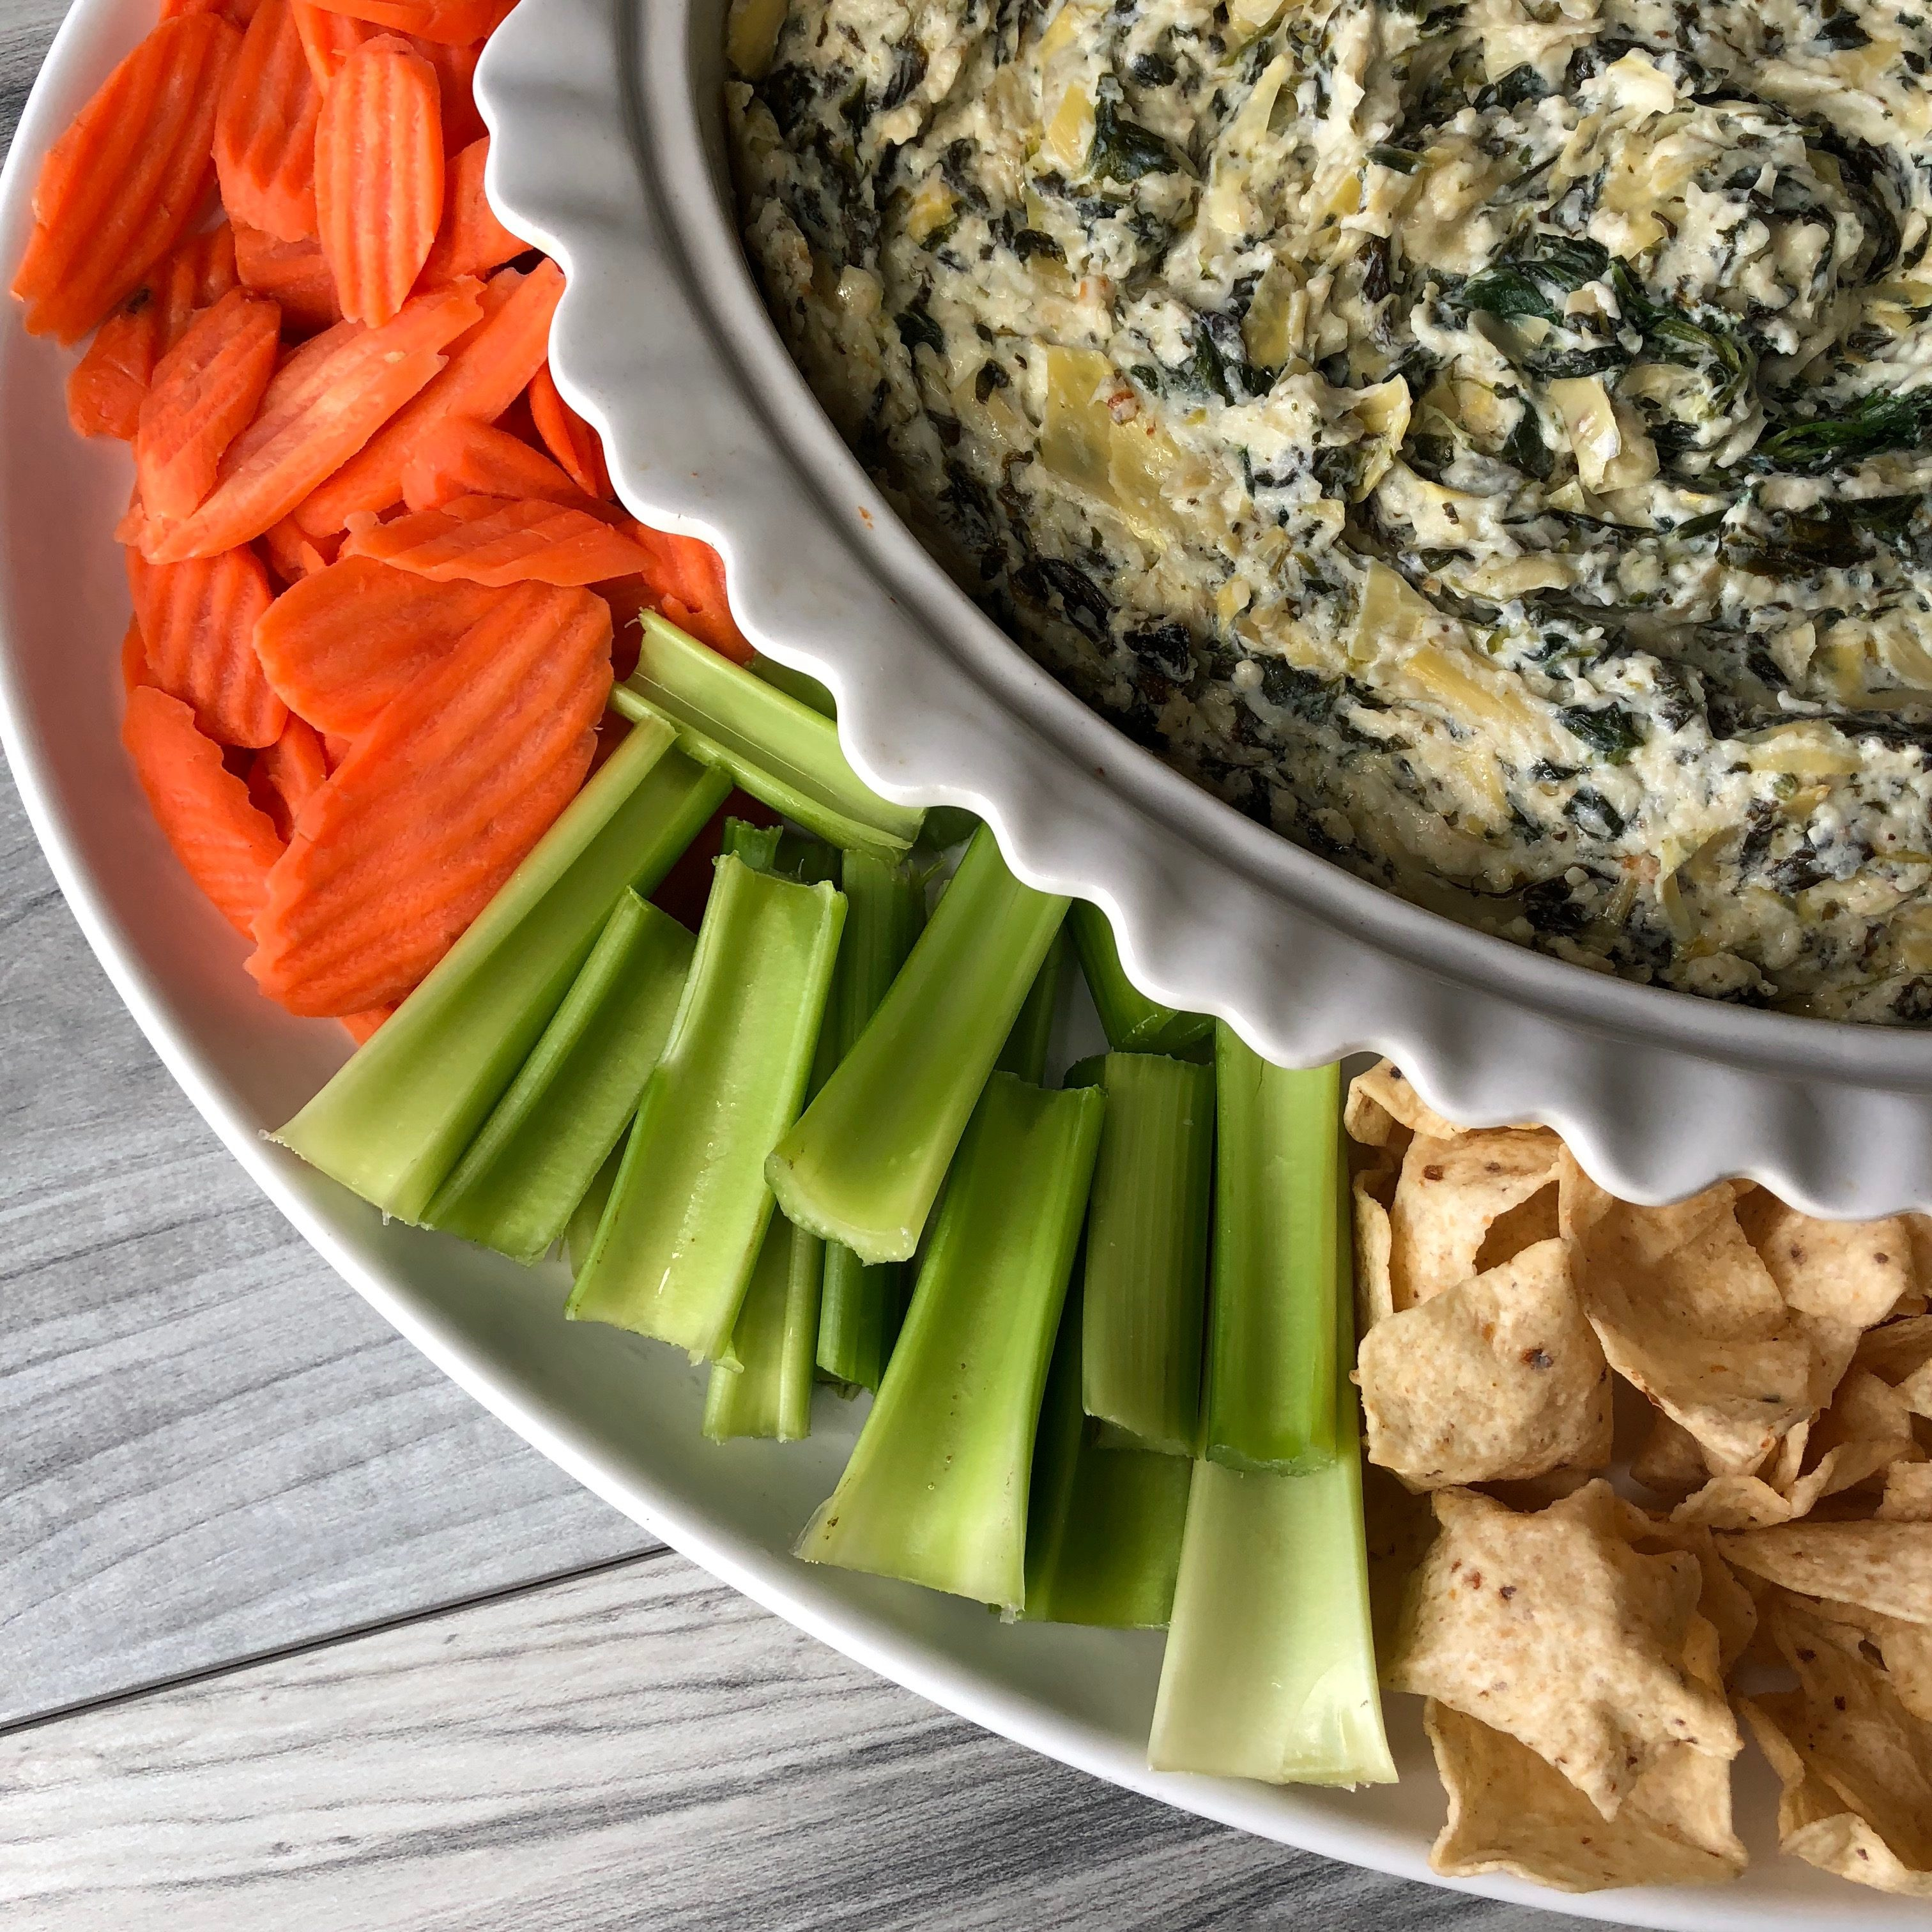 Amazing spinach artichoke dip. This dip is perfect for any party especially those superbowl parties comin up! get the full recipe on www.sugarcoatedhousewife.com